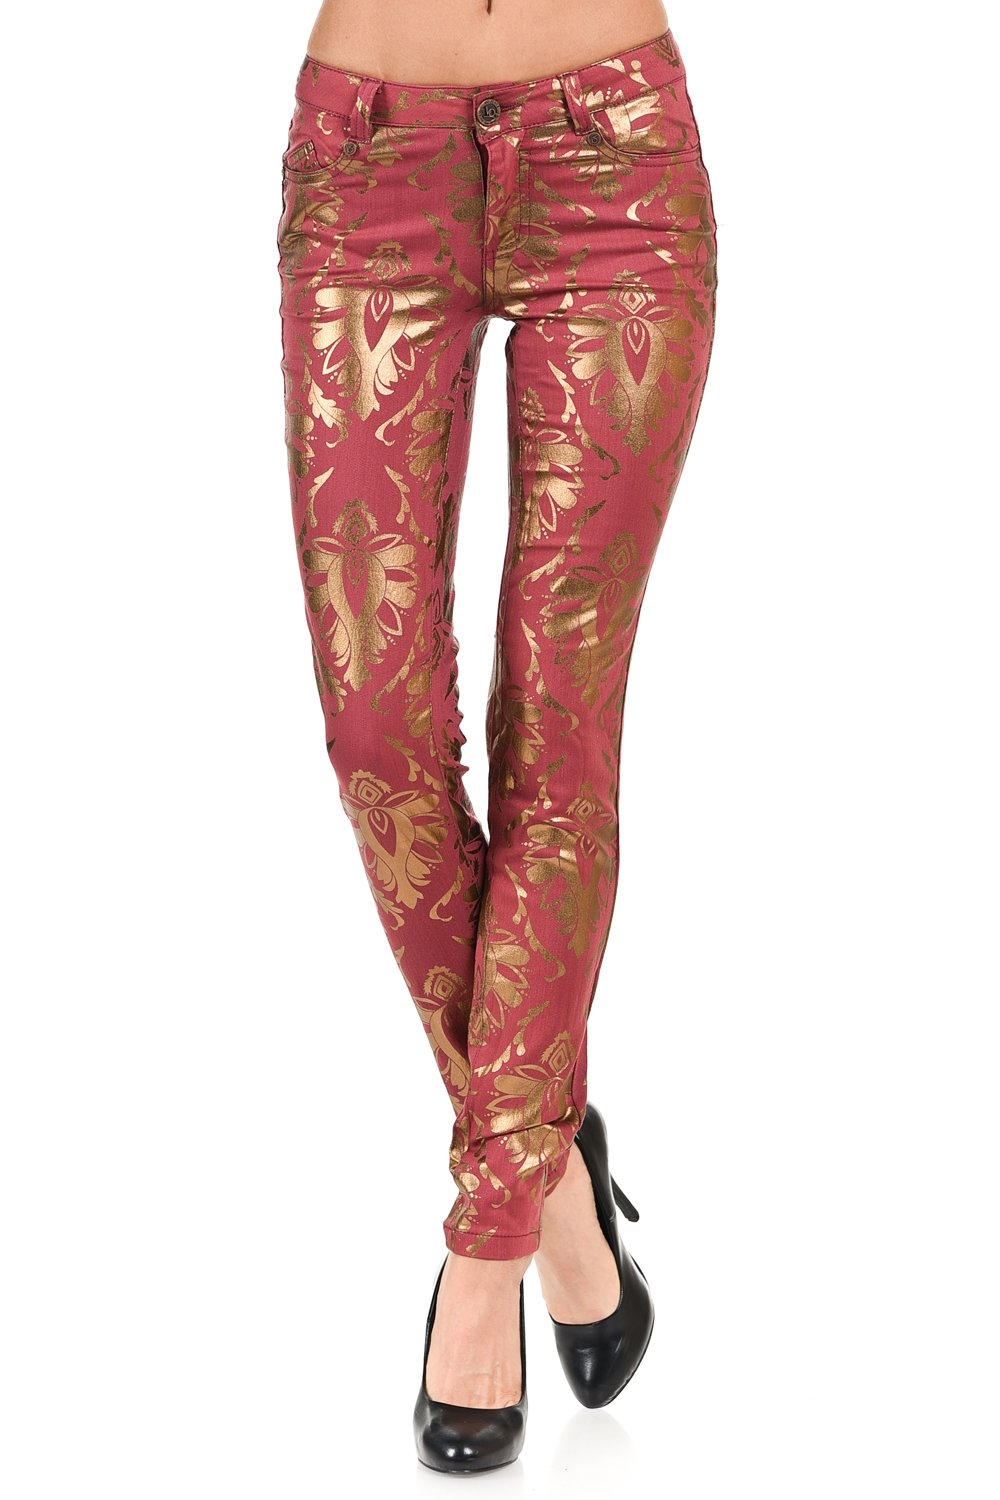 VIRGIN ONLY Women's Damask metallic skinny color pants-9-Pink